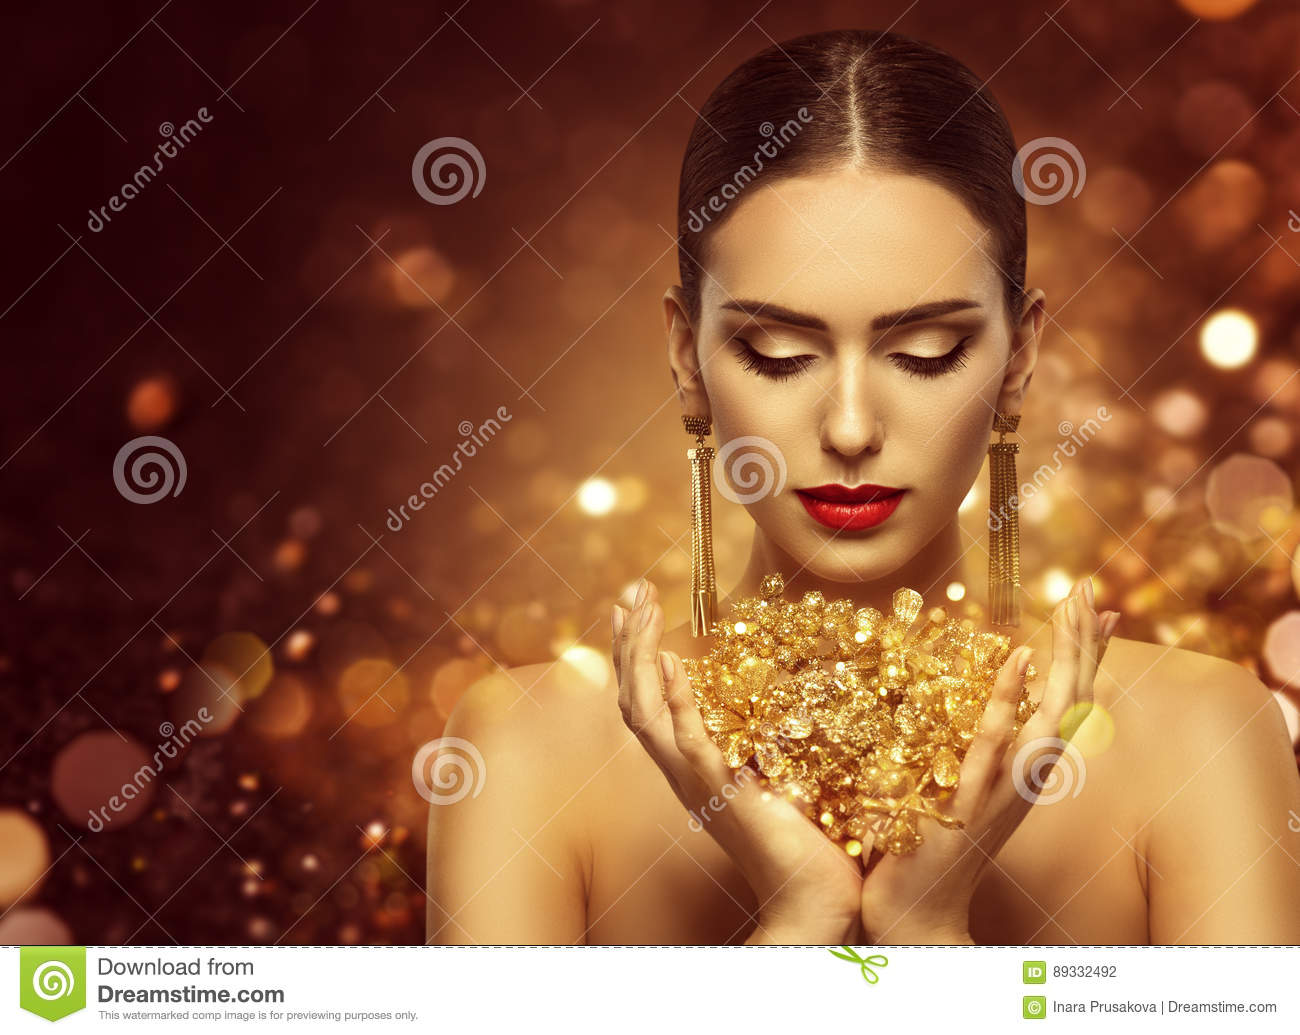 Fashion Model Holding Gold Jewelry in Hands, Woman Golden Beauty